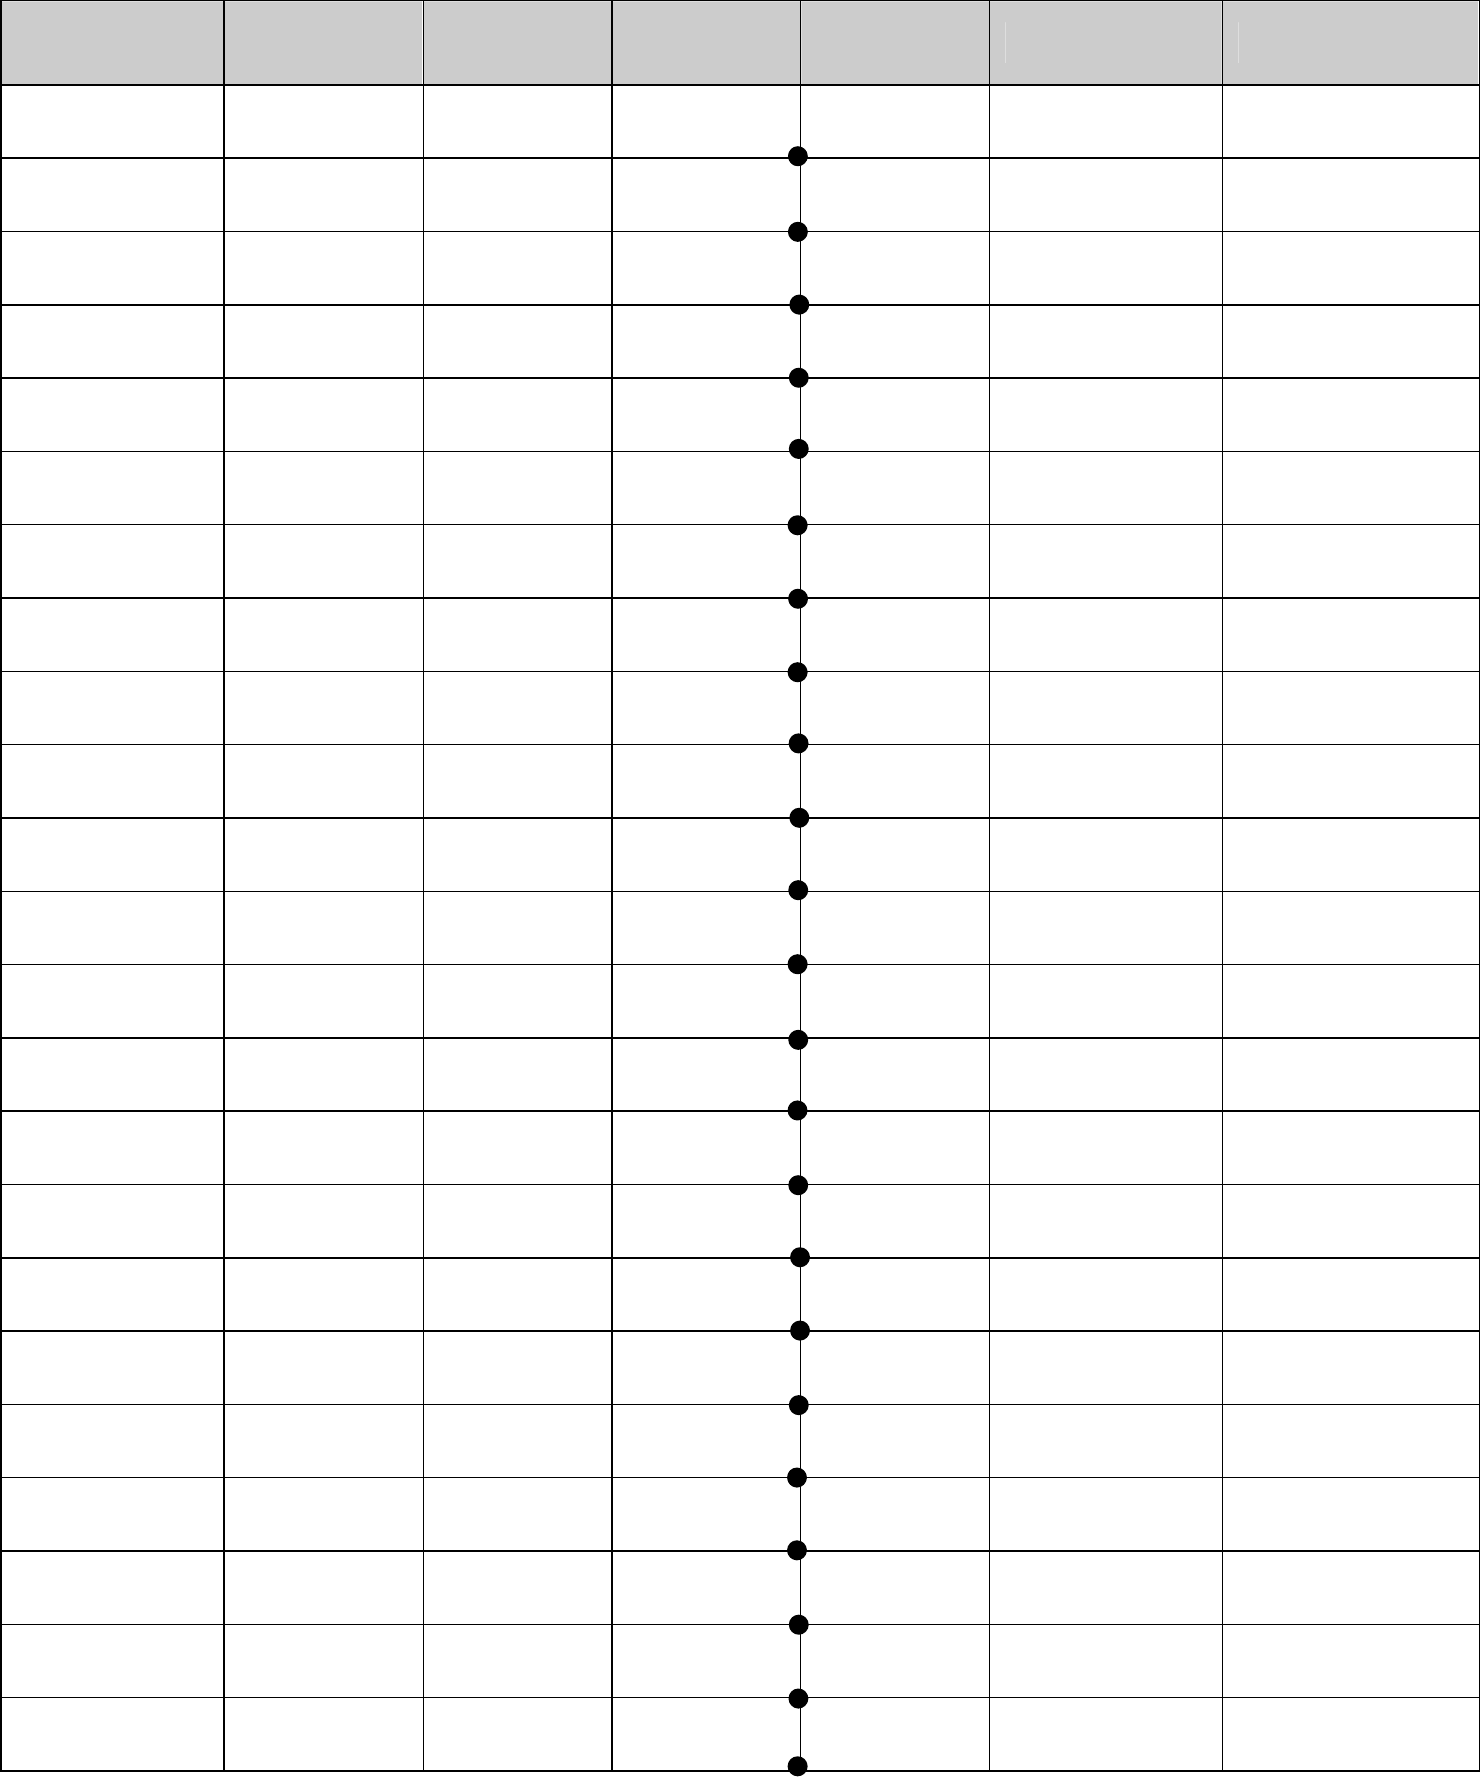 Decimals To Thousandths Place Value Chart Free Download